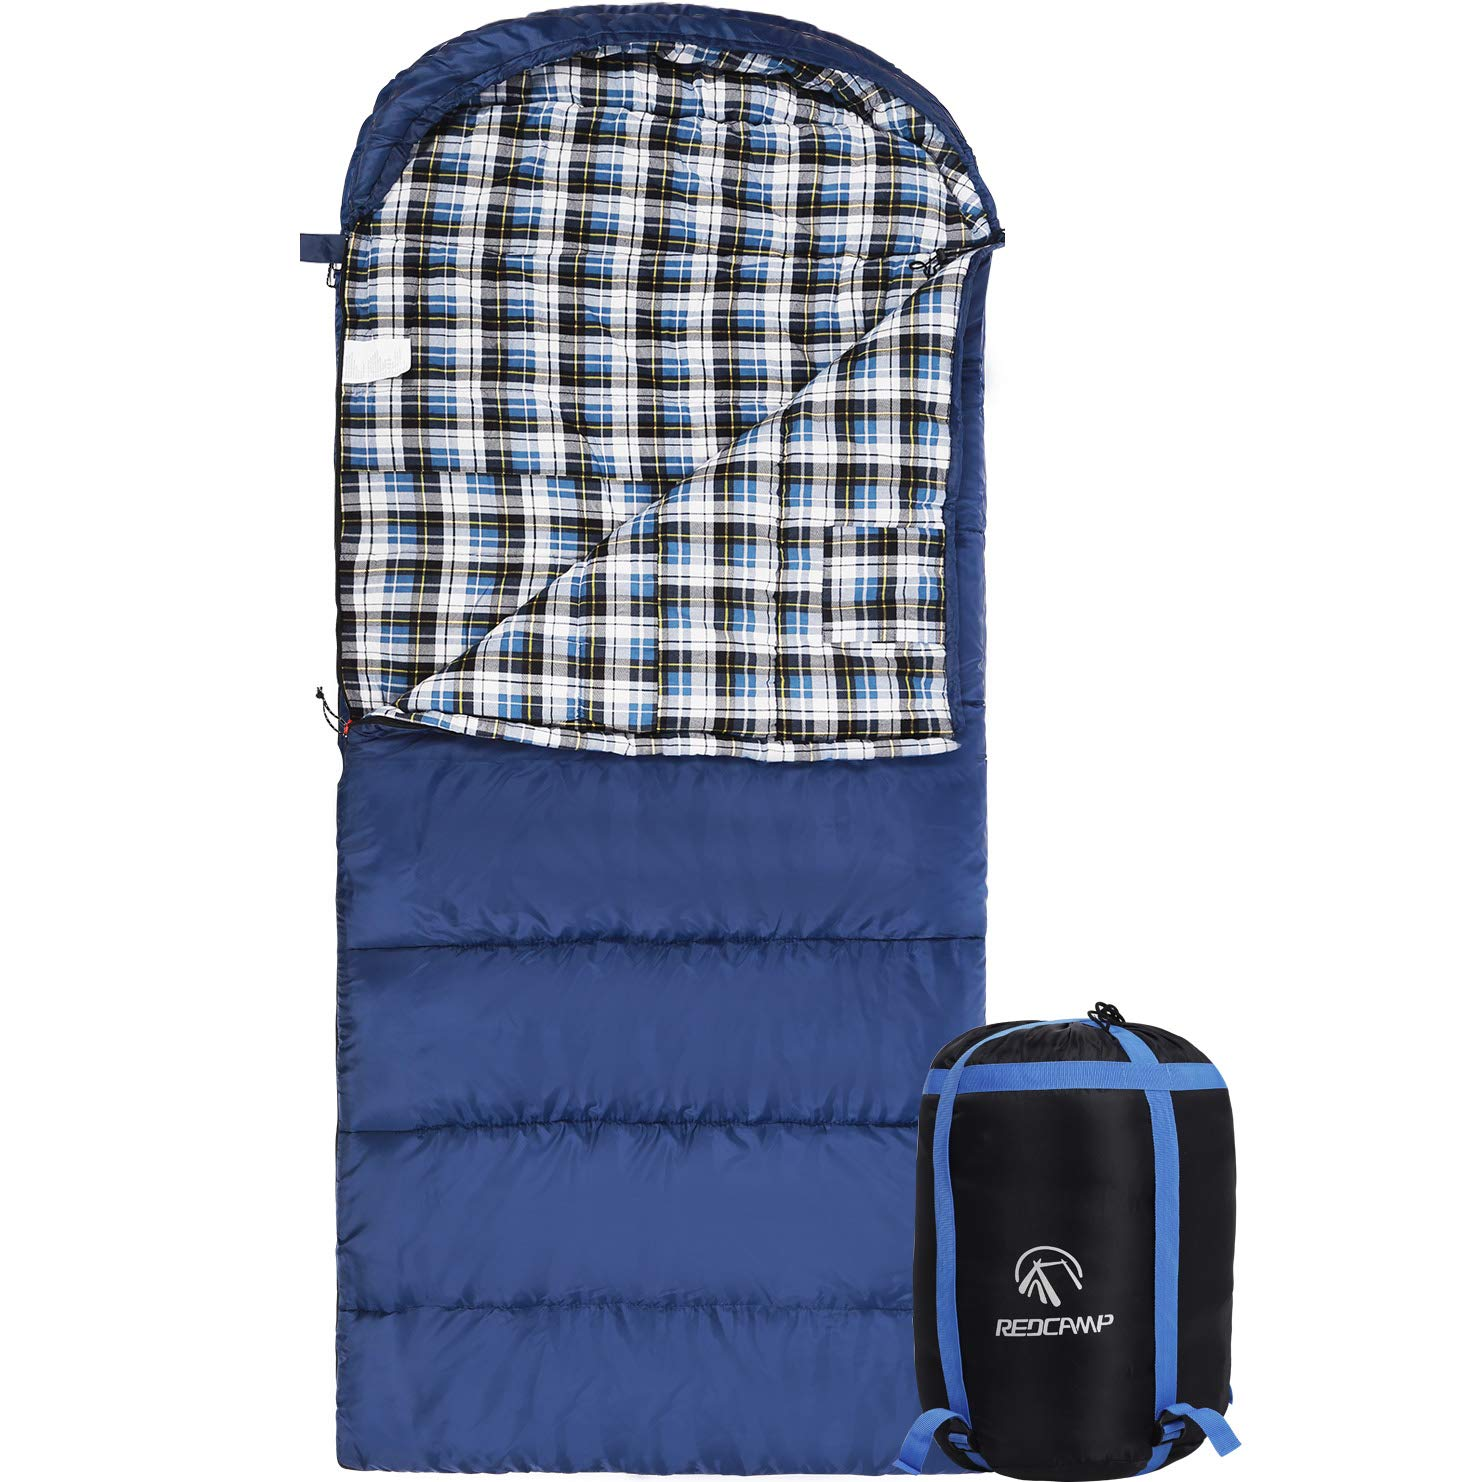 REDCAMP Cotton Flannel Sleeping Bag for Adults, XL 32F Comfortable, Envelope with Compression Sack Blue 2lbs(95''x35'') by REDCAMP